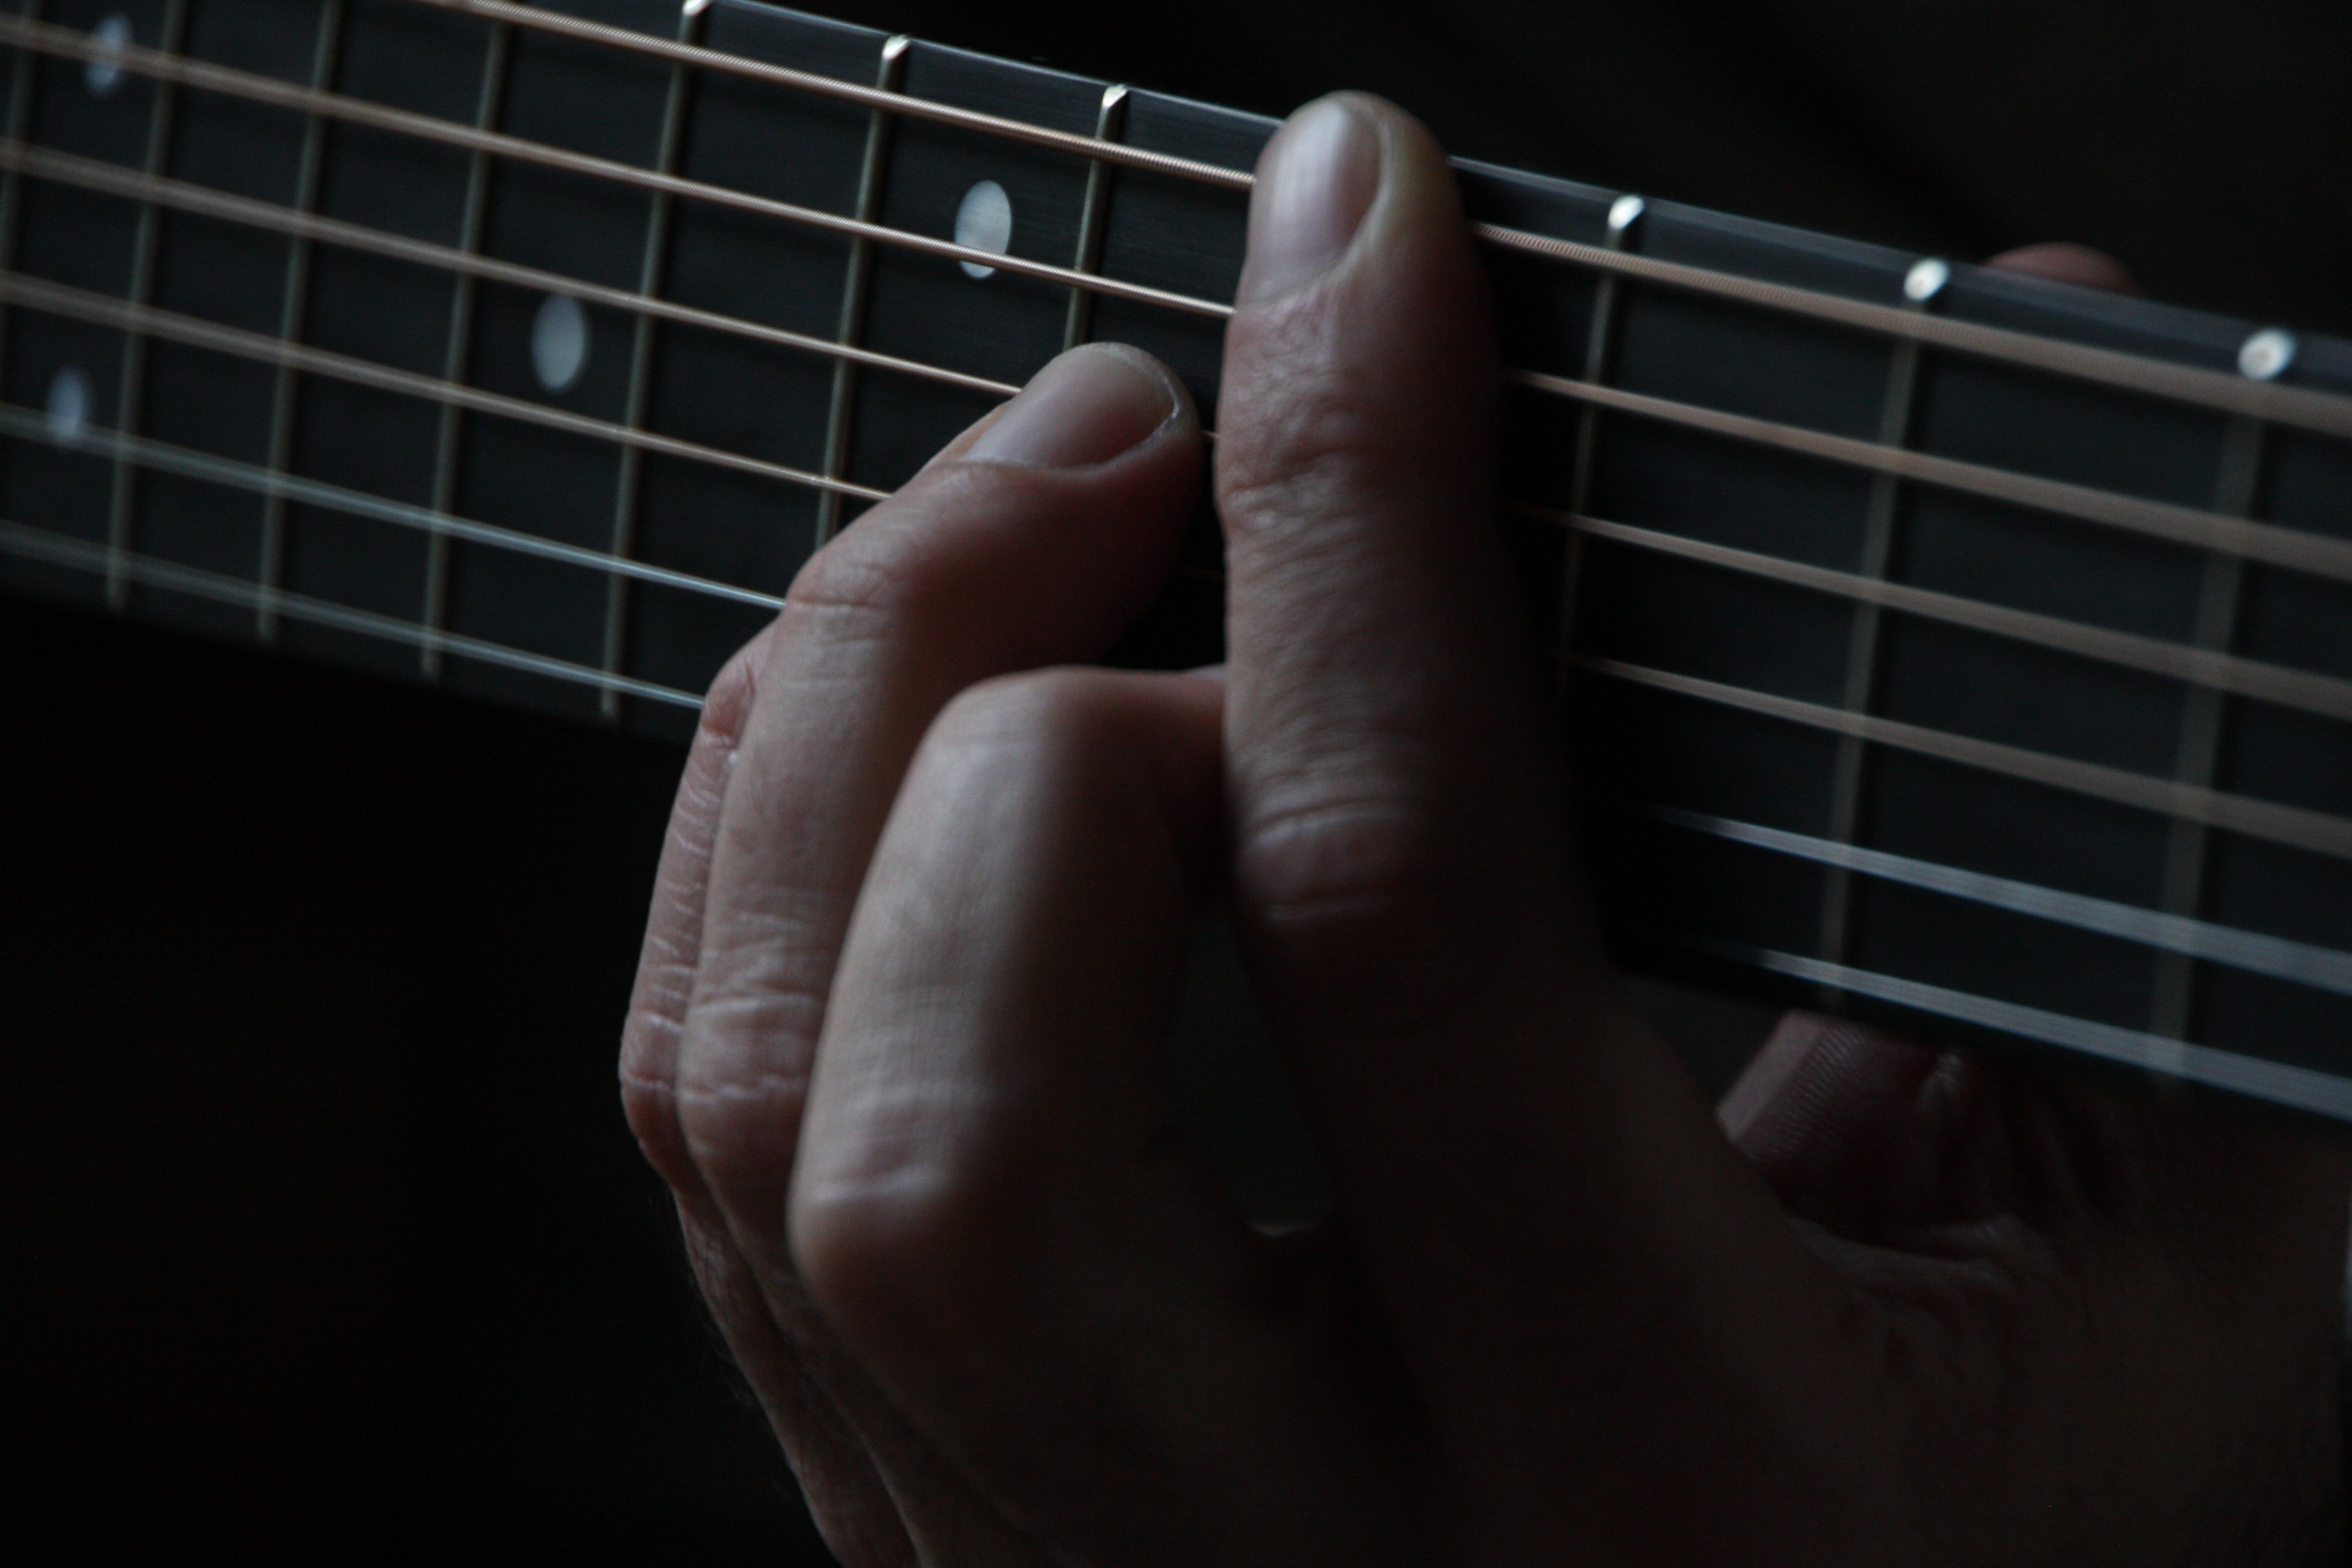 A close-up of a person's hands on the neck of a guitar